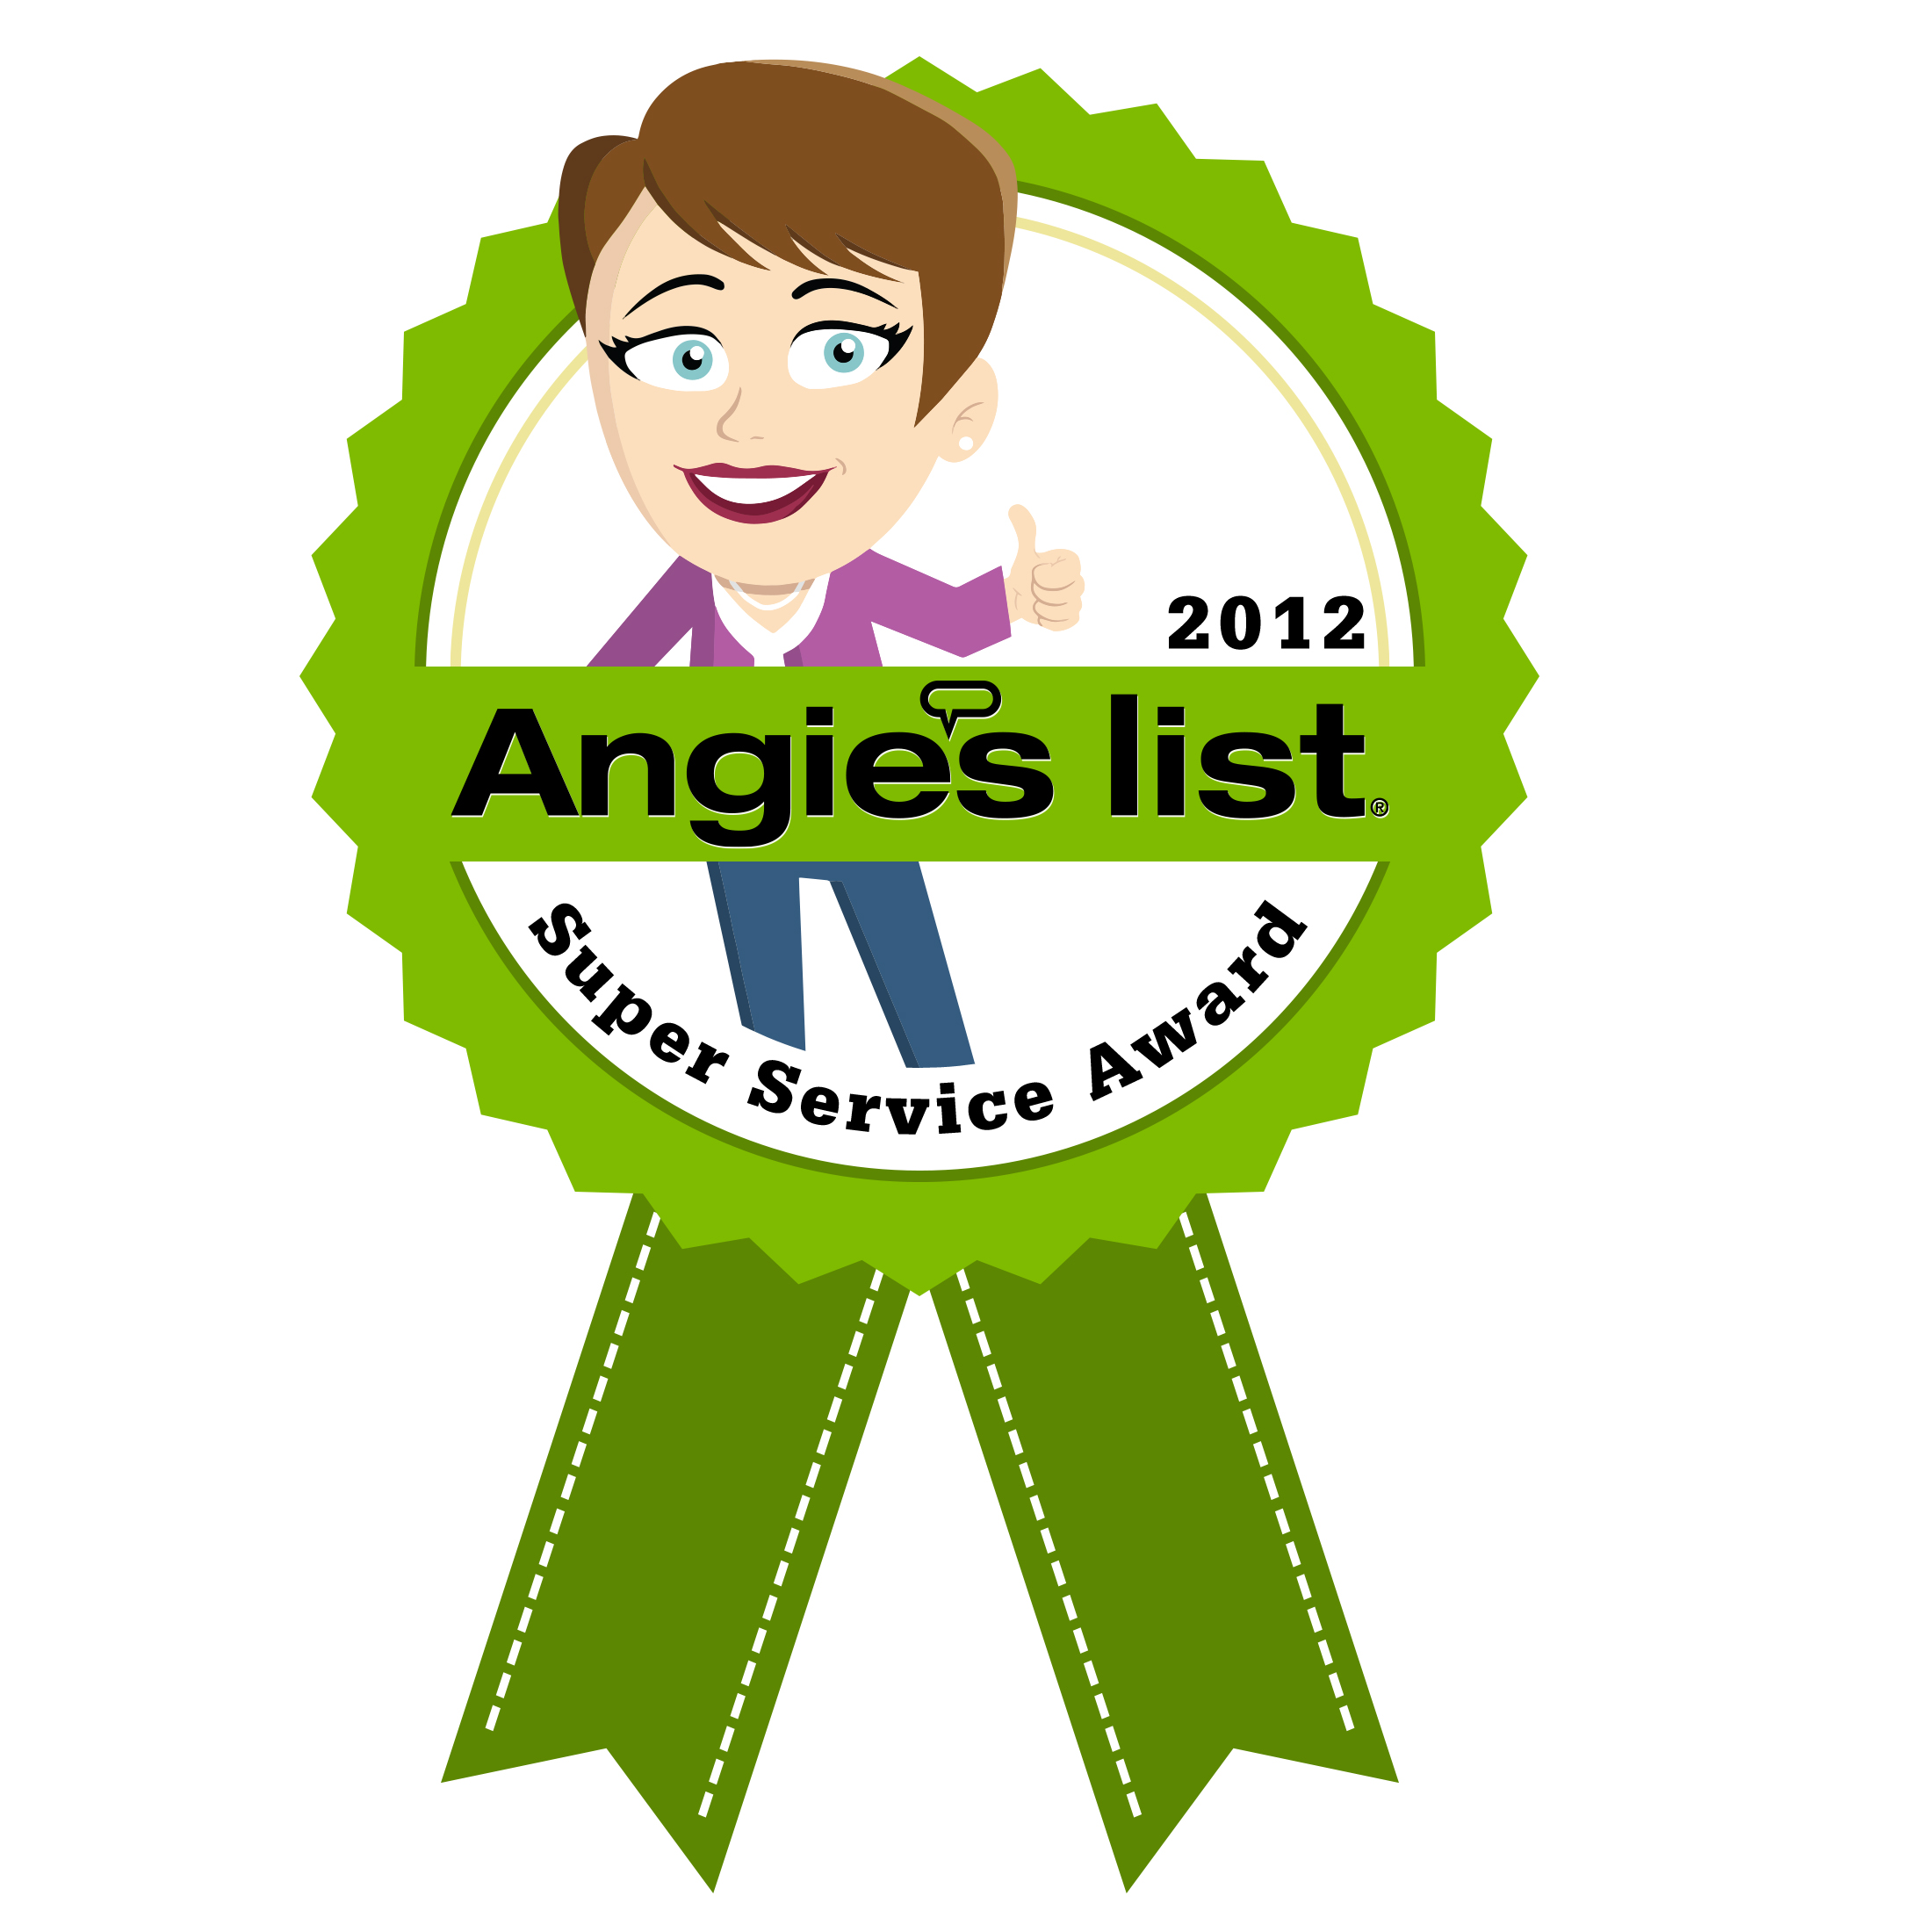 Angie's List member? Check out our reviews!